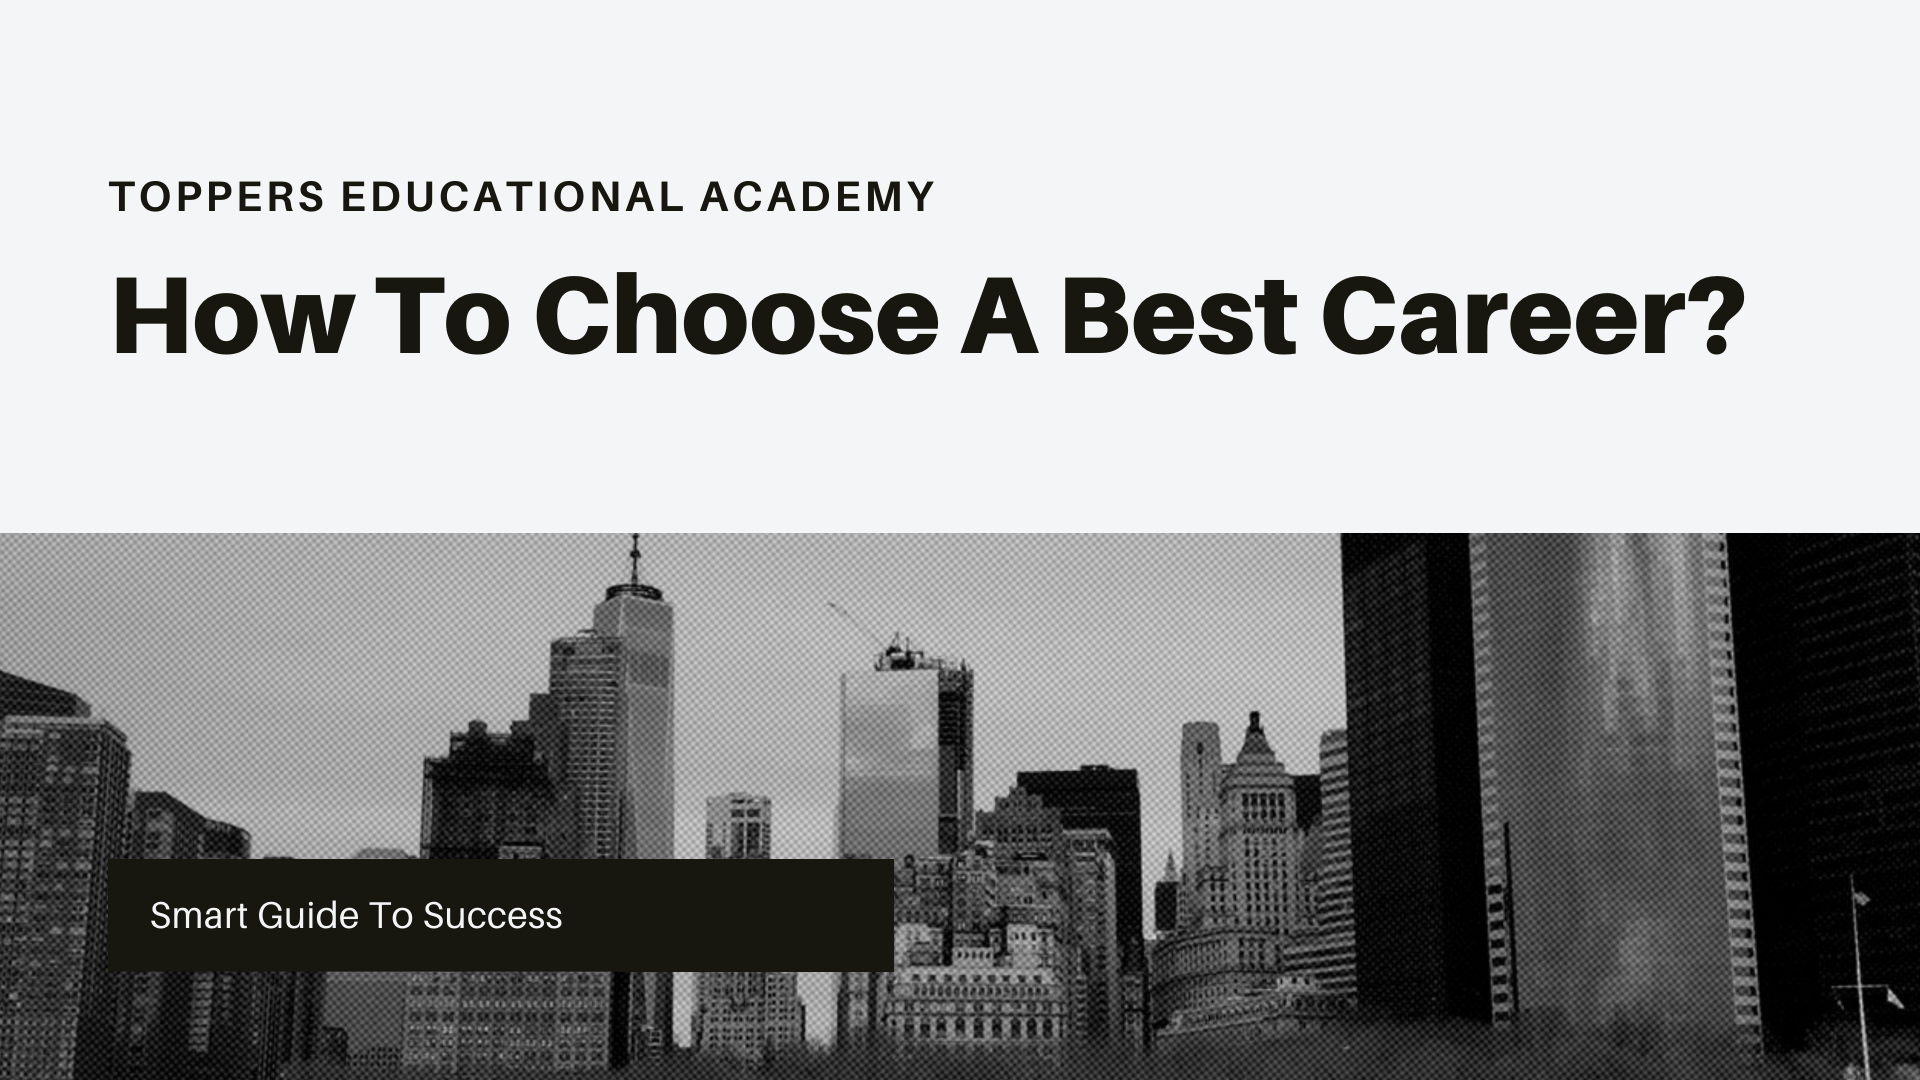 How to choose a best career?